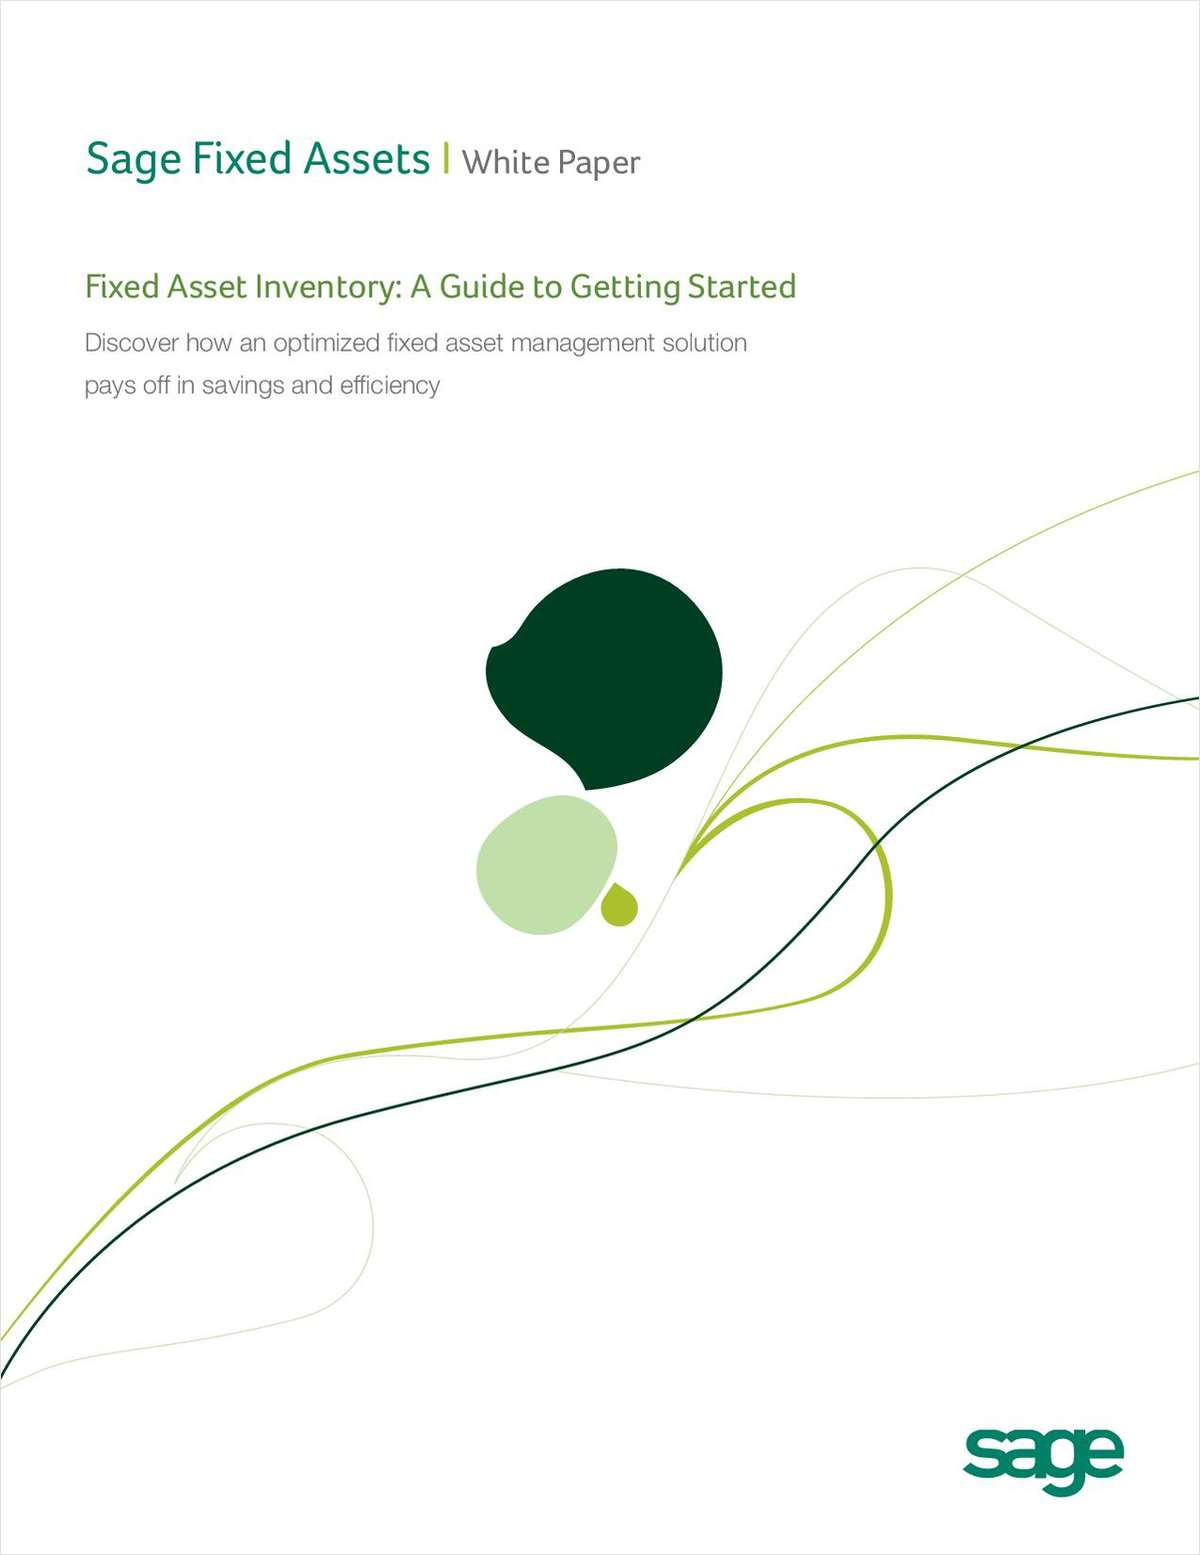 Fixed Asset Inventory: A Guide to Getting Started